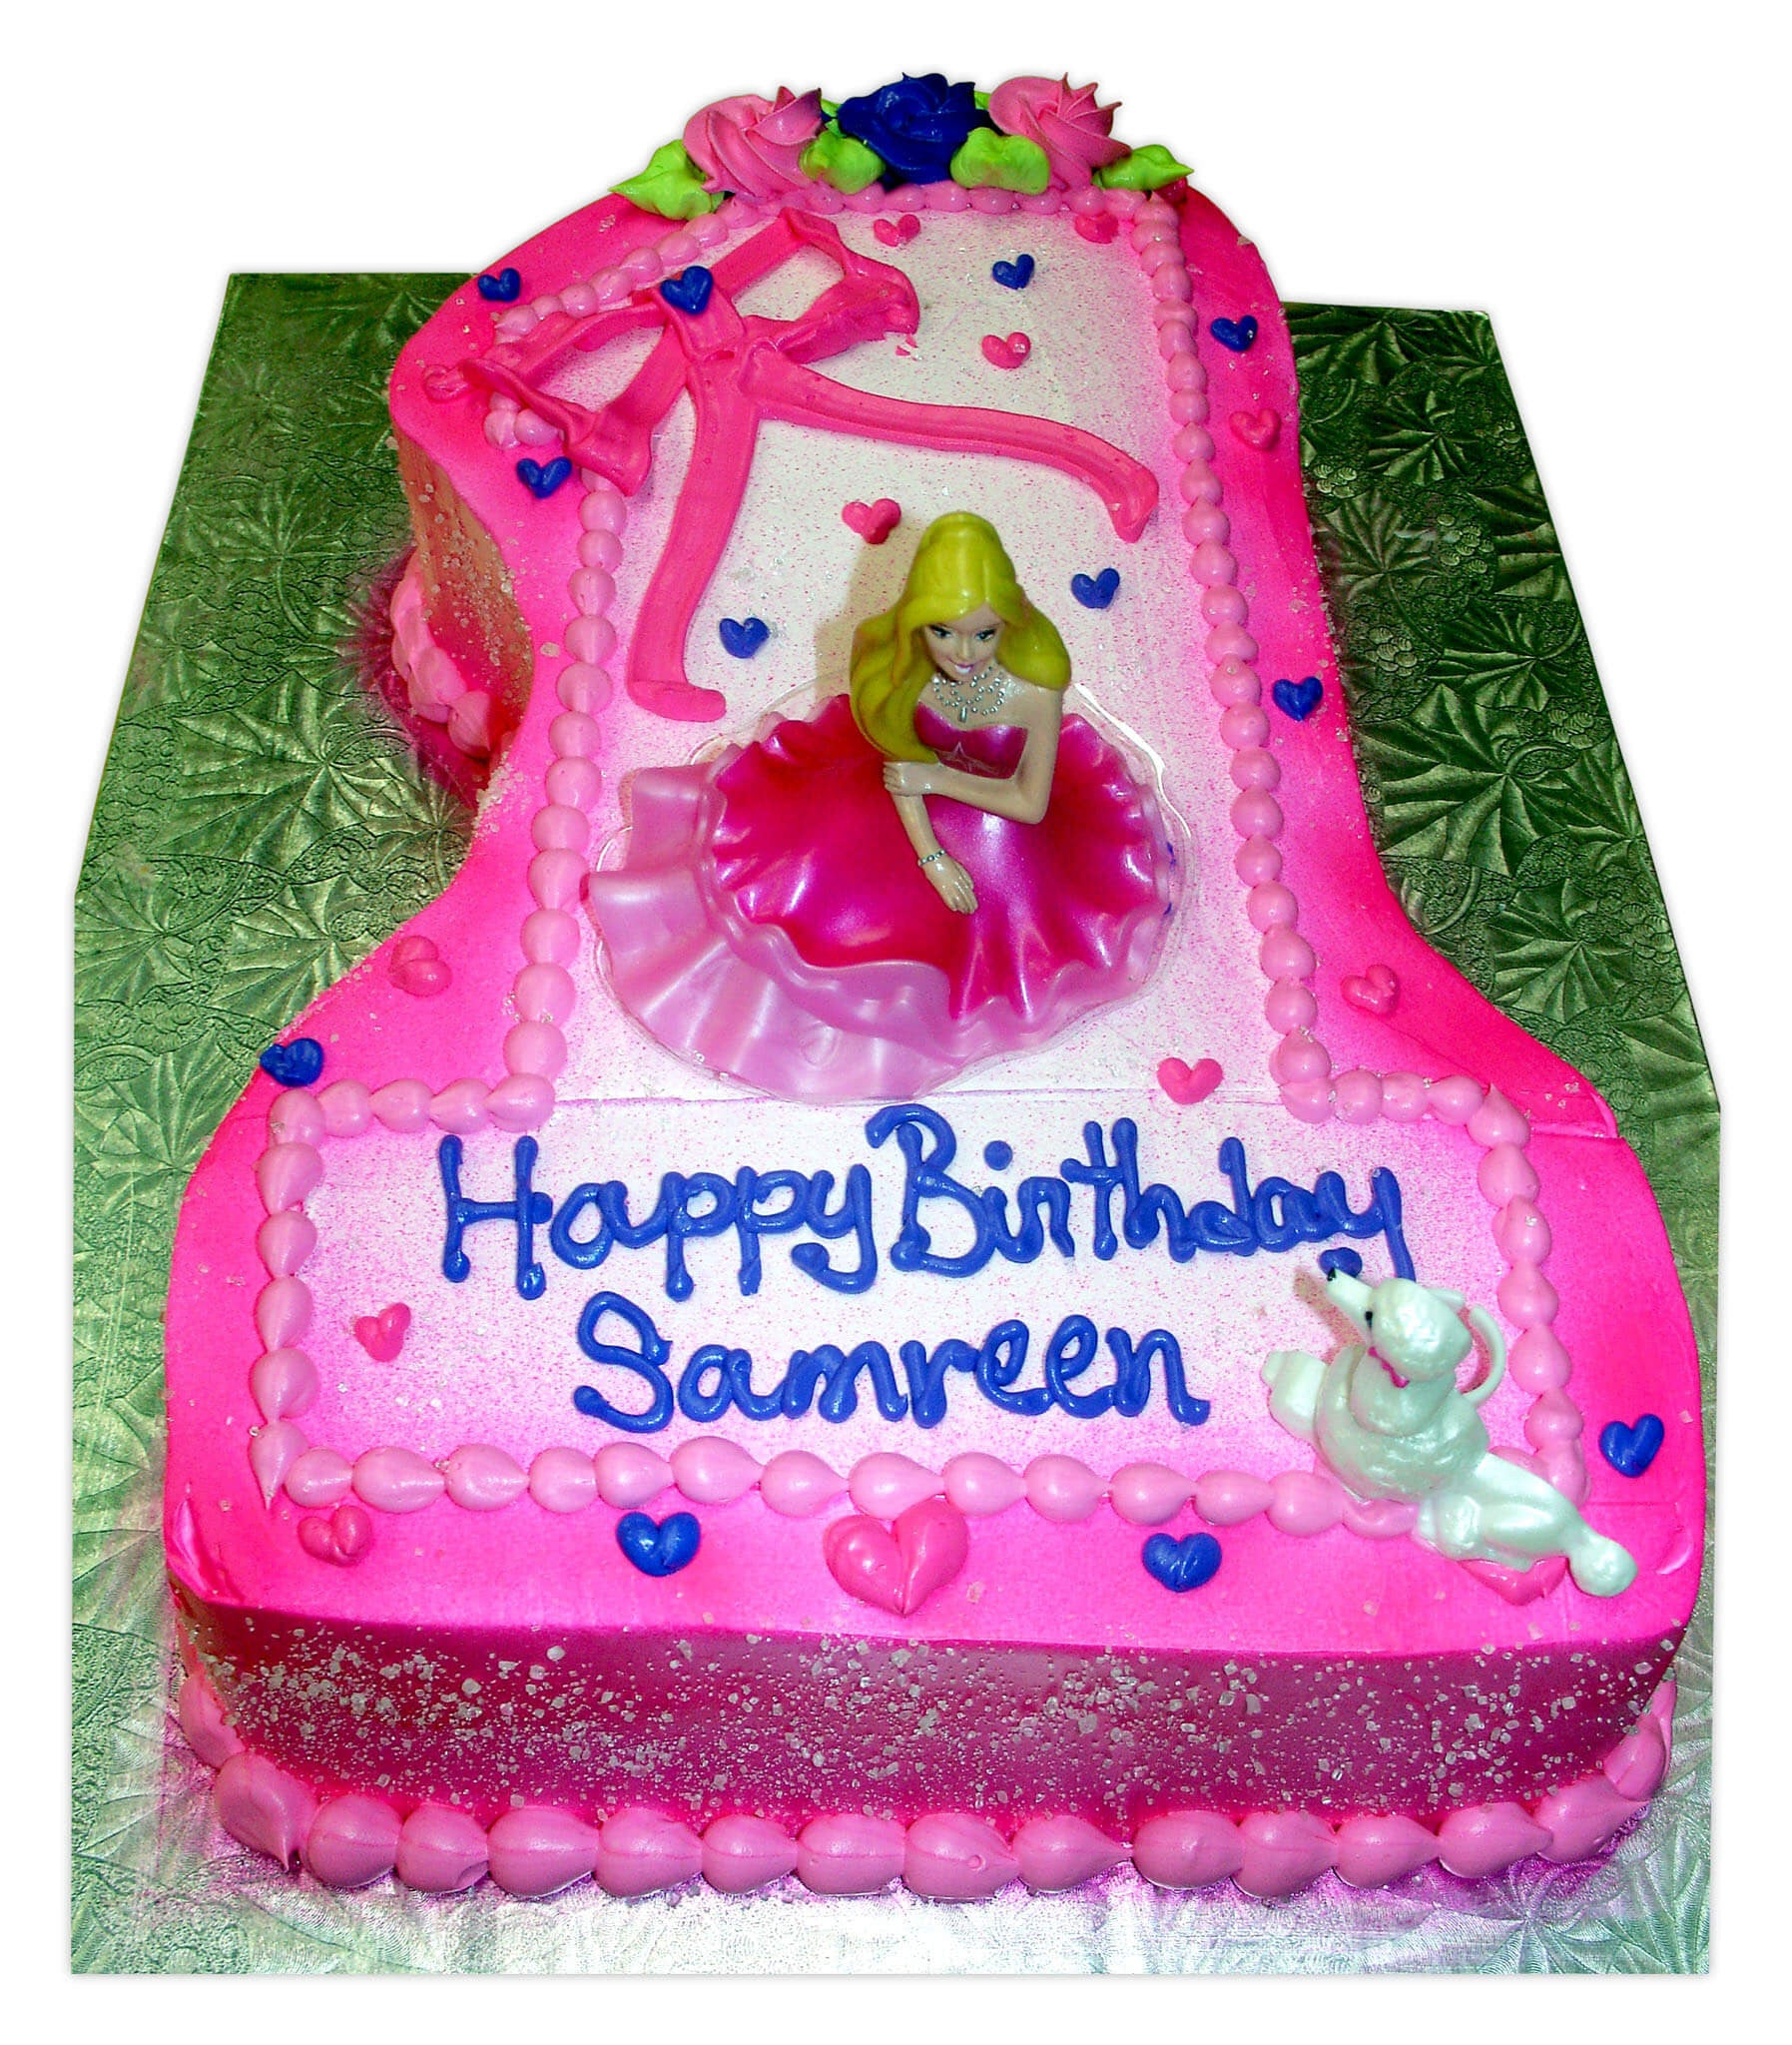 Remarkable Barbie 1St Birthday Molded Cake Rashmis Bakery Funny Birthday Cards Online Inifodamsfinfo